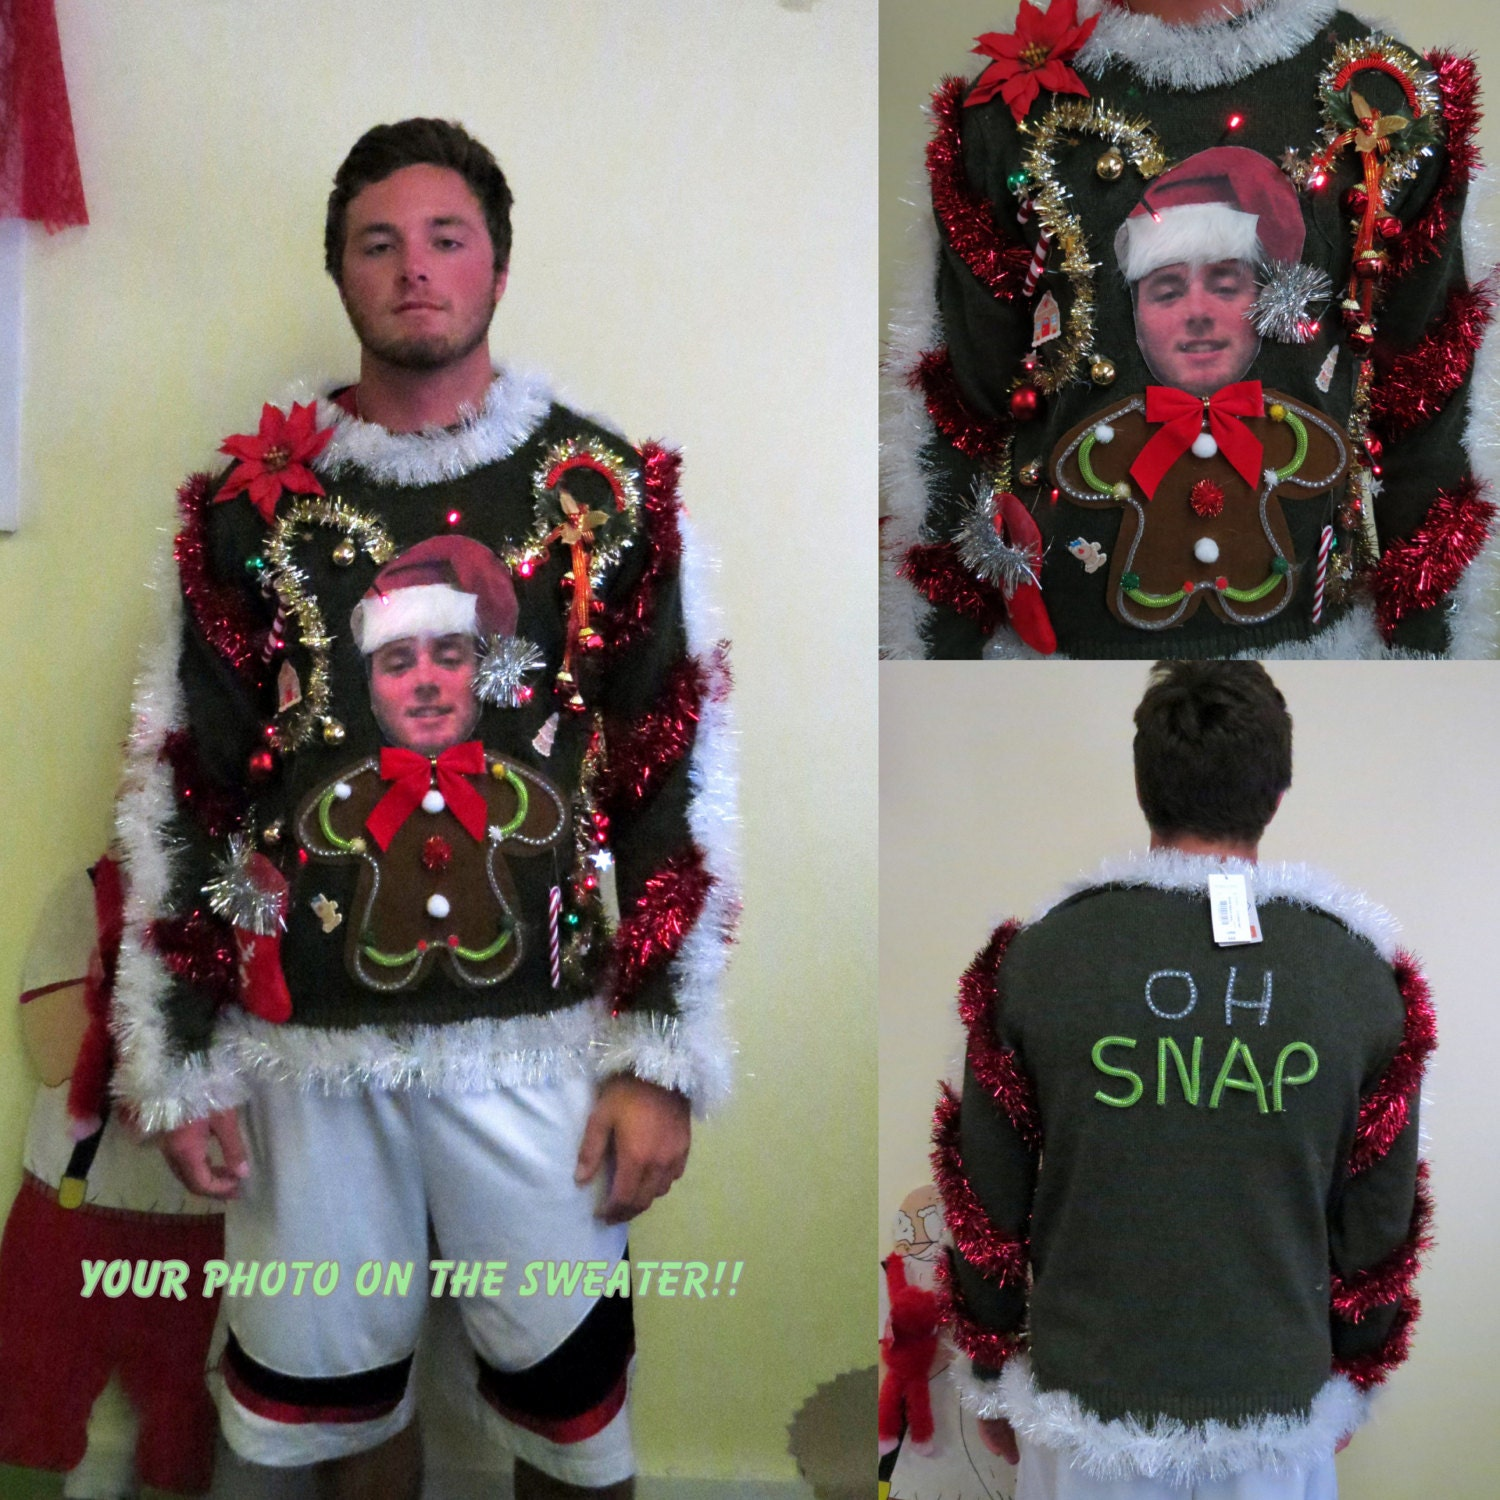 Custom Your Photo Sweater Light up Tacky Ugly Christmas